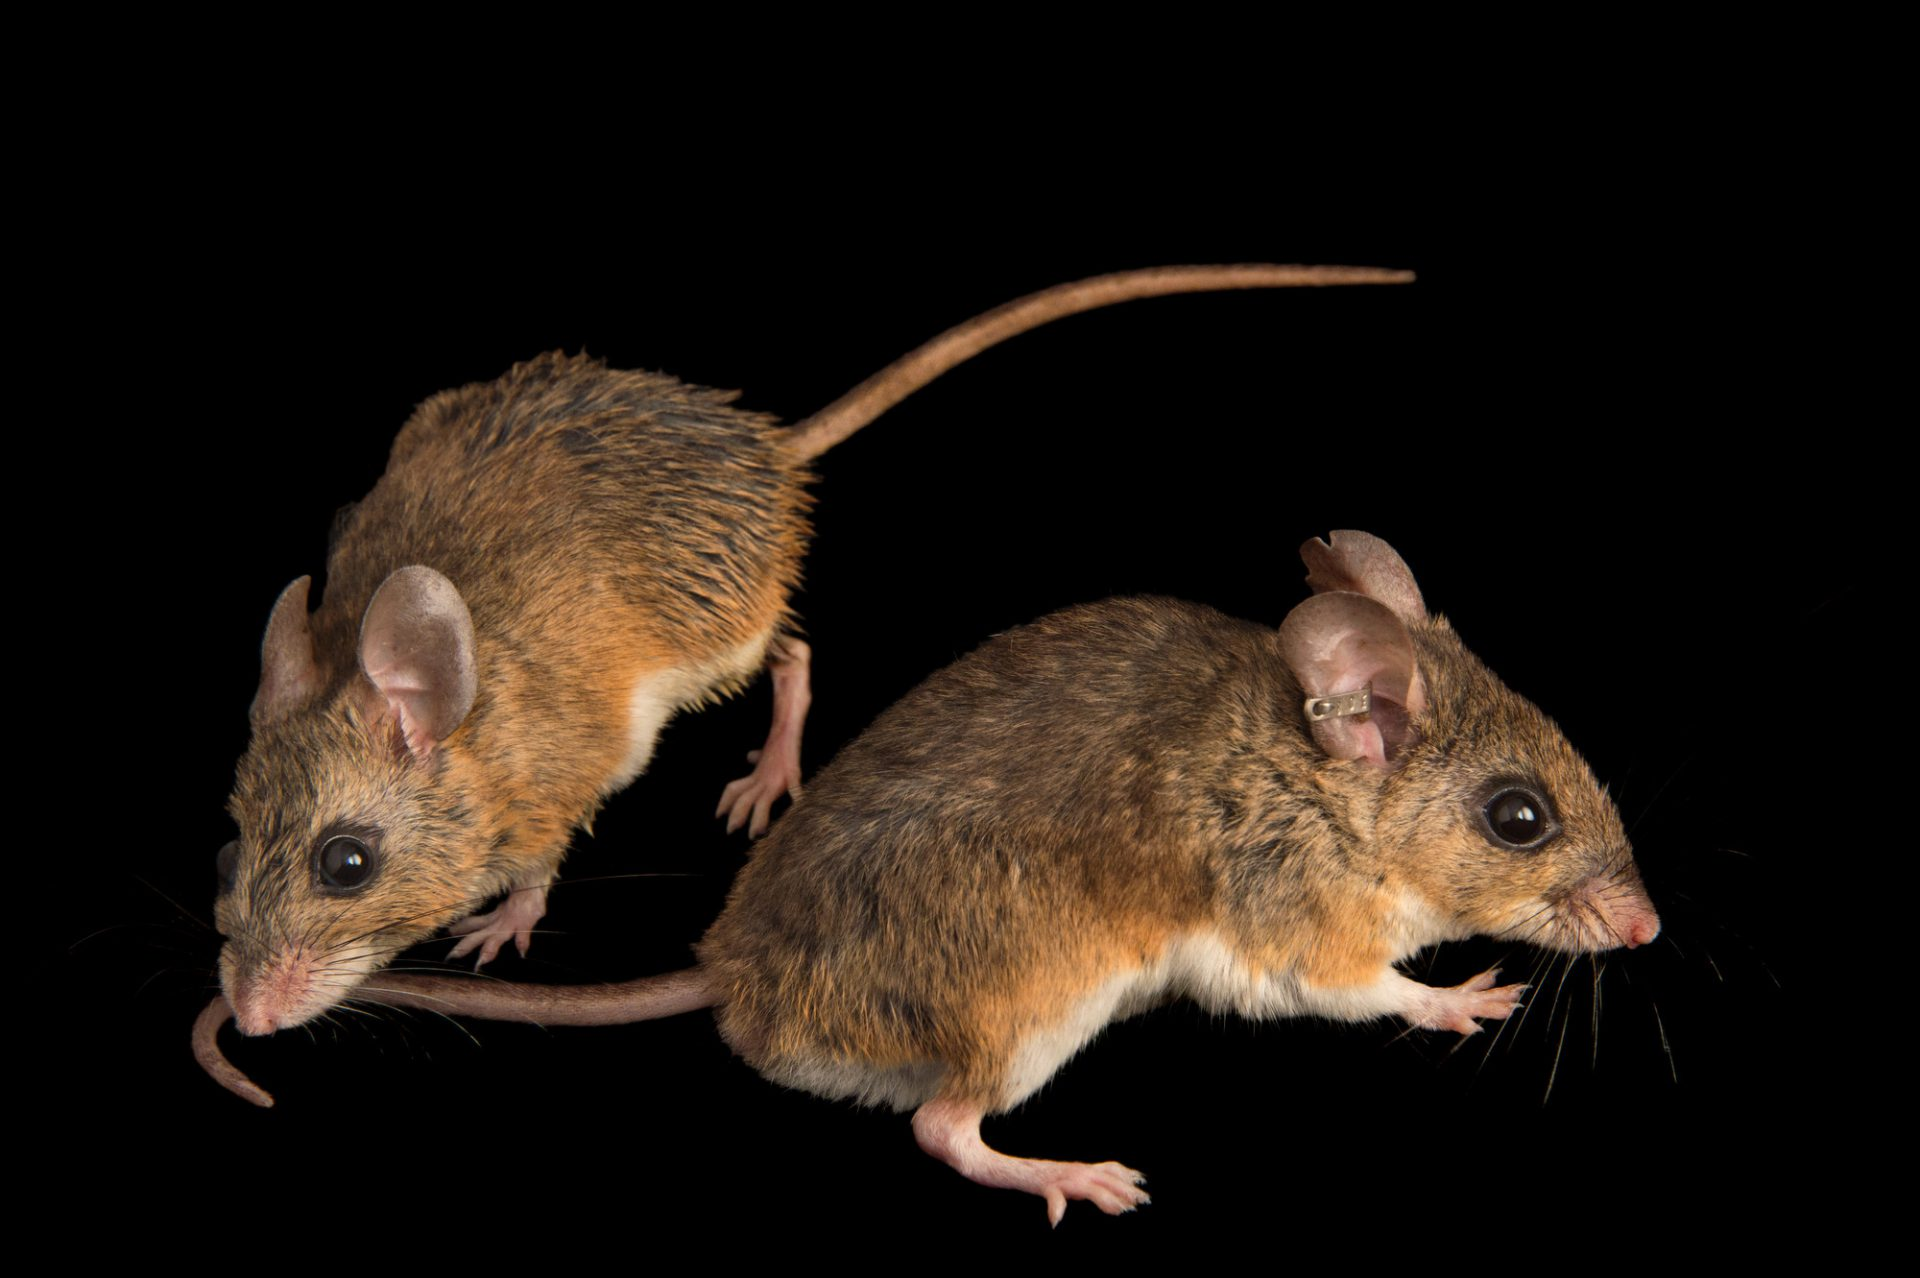 Picture of a vulnerable Florida deermice (Podomys floridanus) from the wild in Florida.